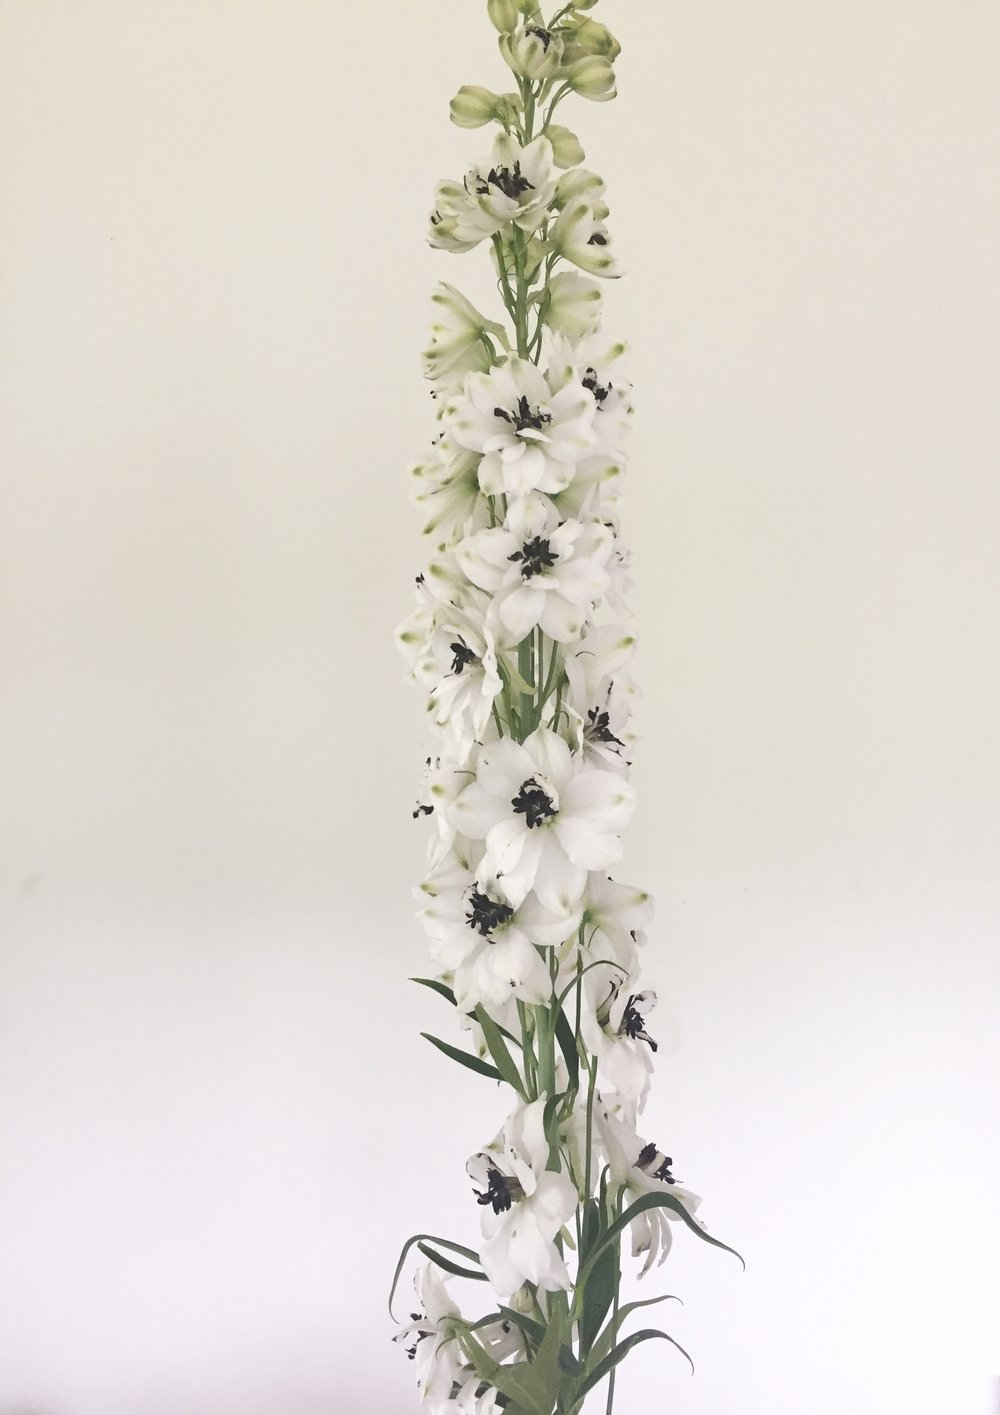 Delphinium cultorum, white w/ dark bee